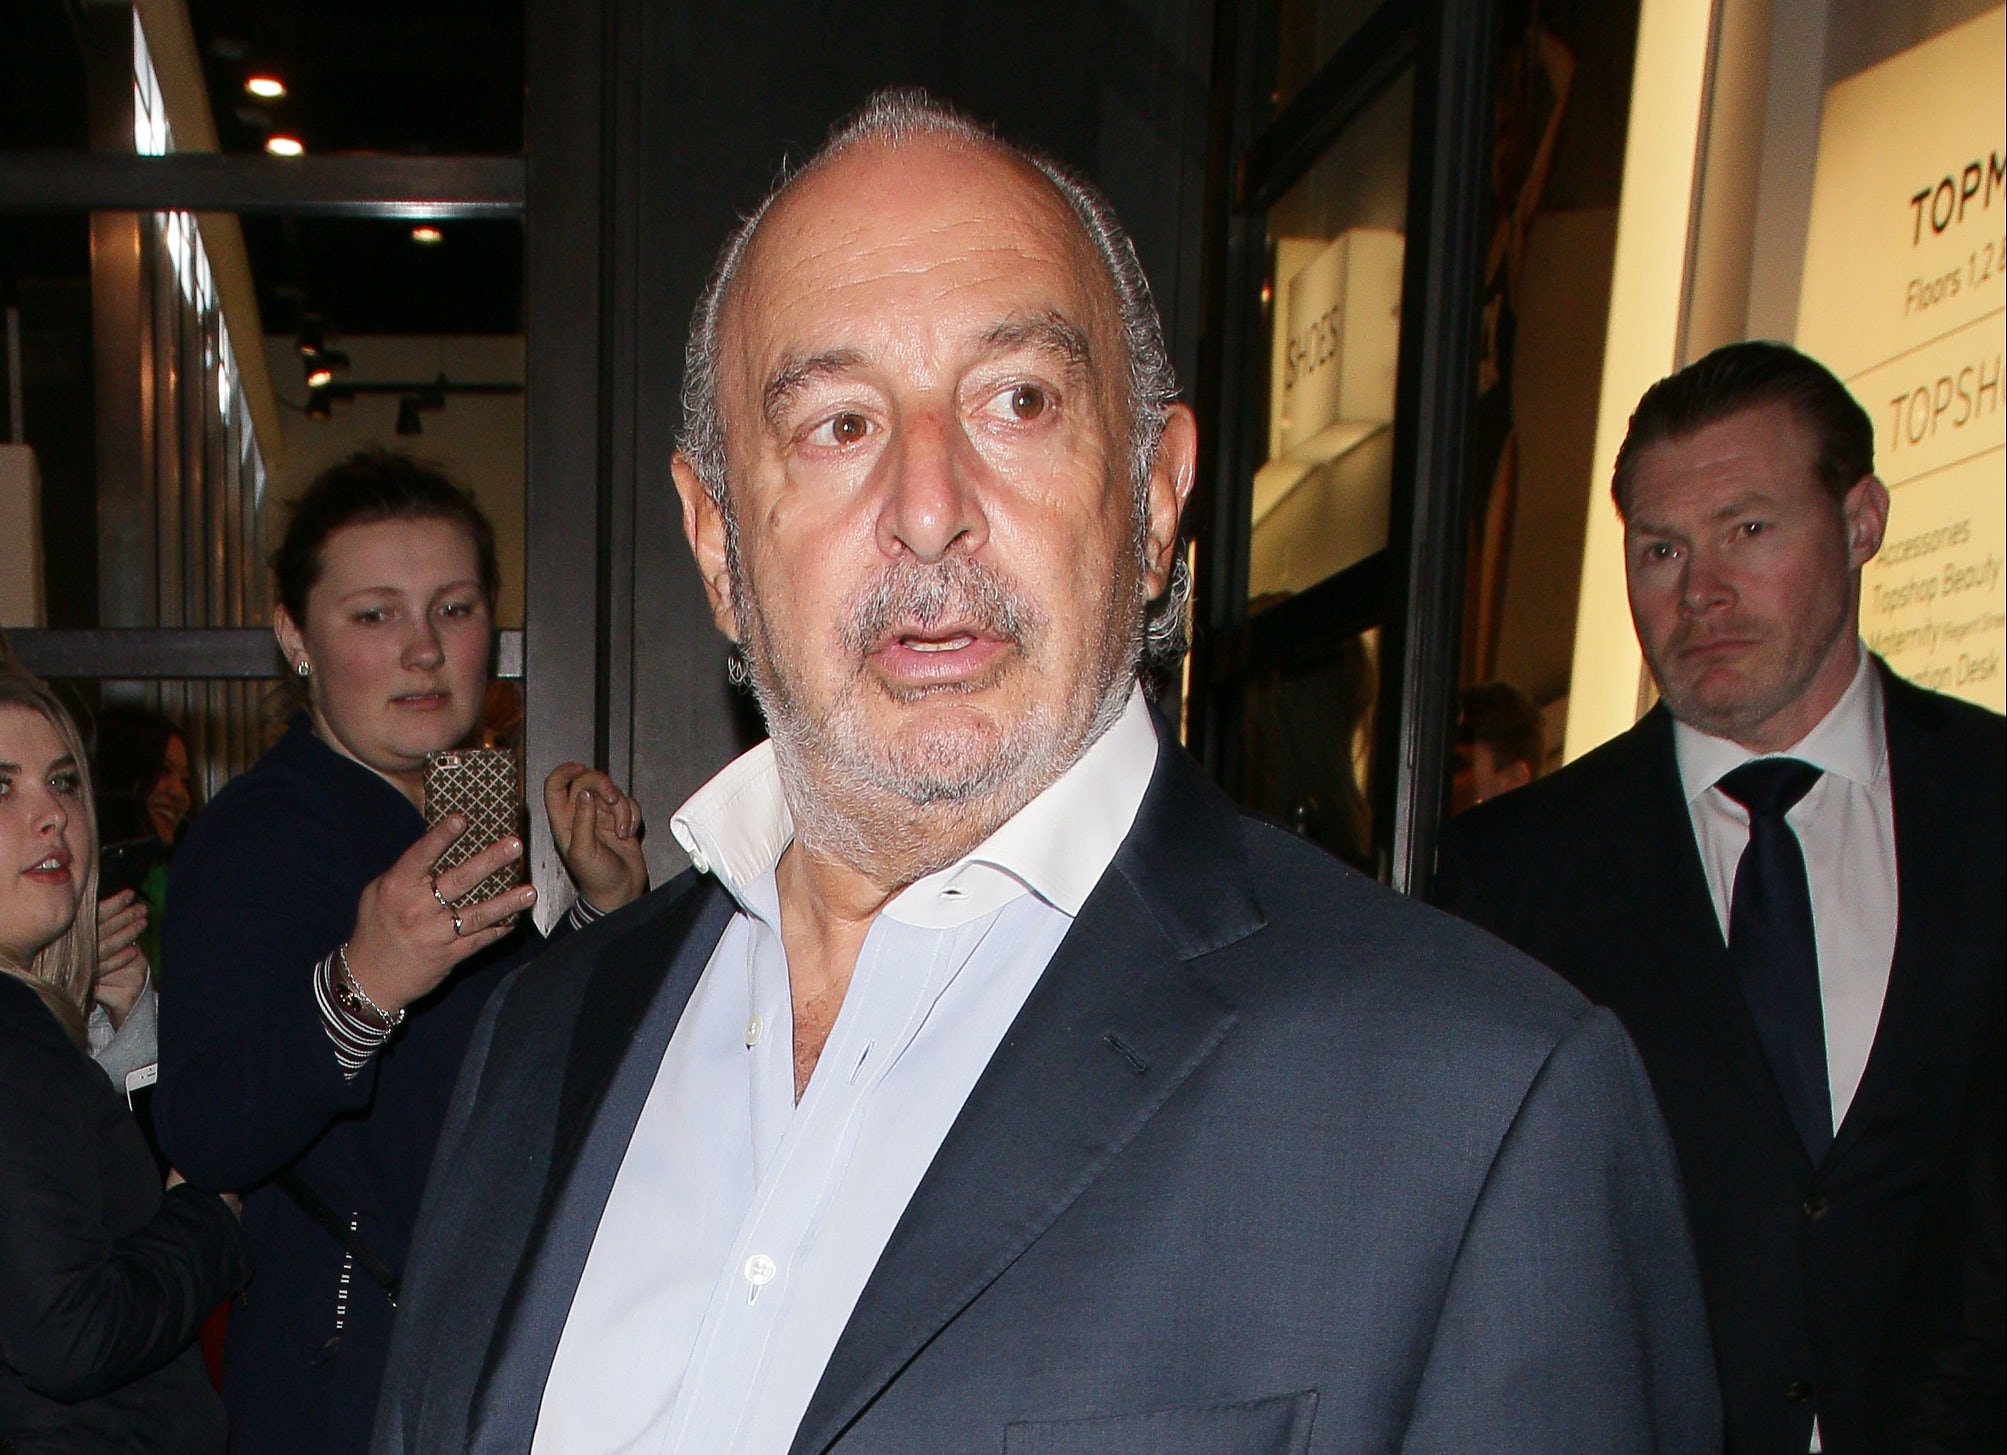 Sir Philip Green at Topshop Oxford Street | Source: Getty